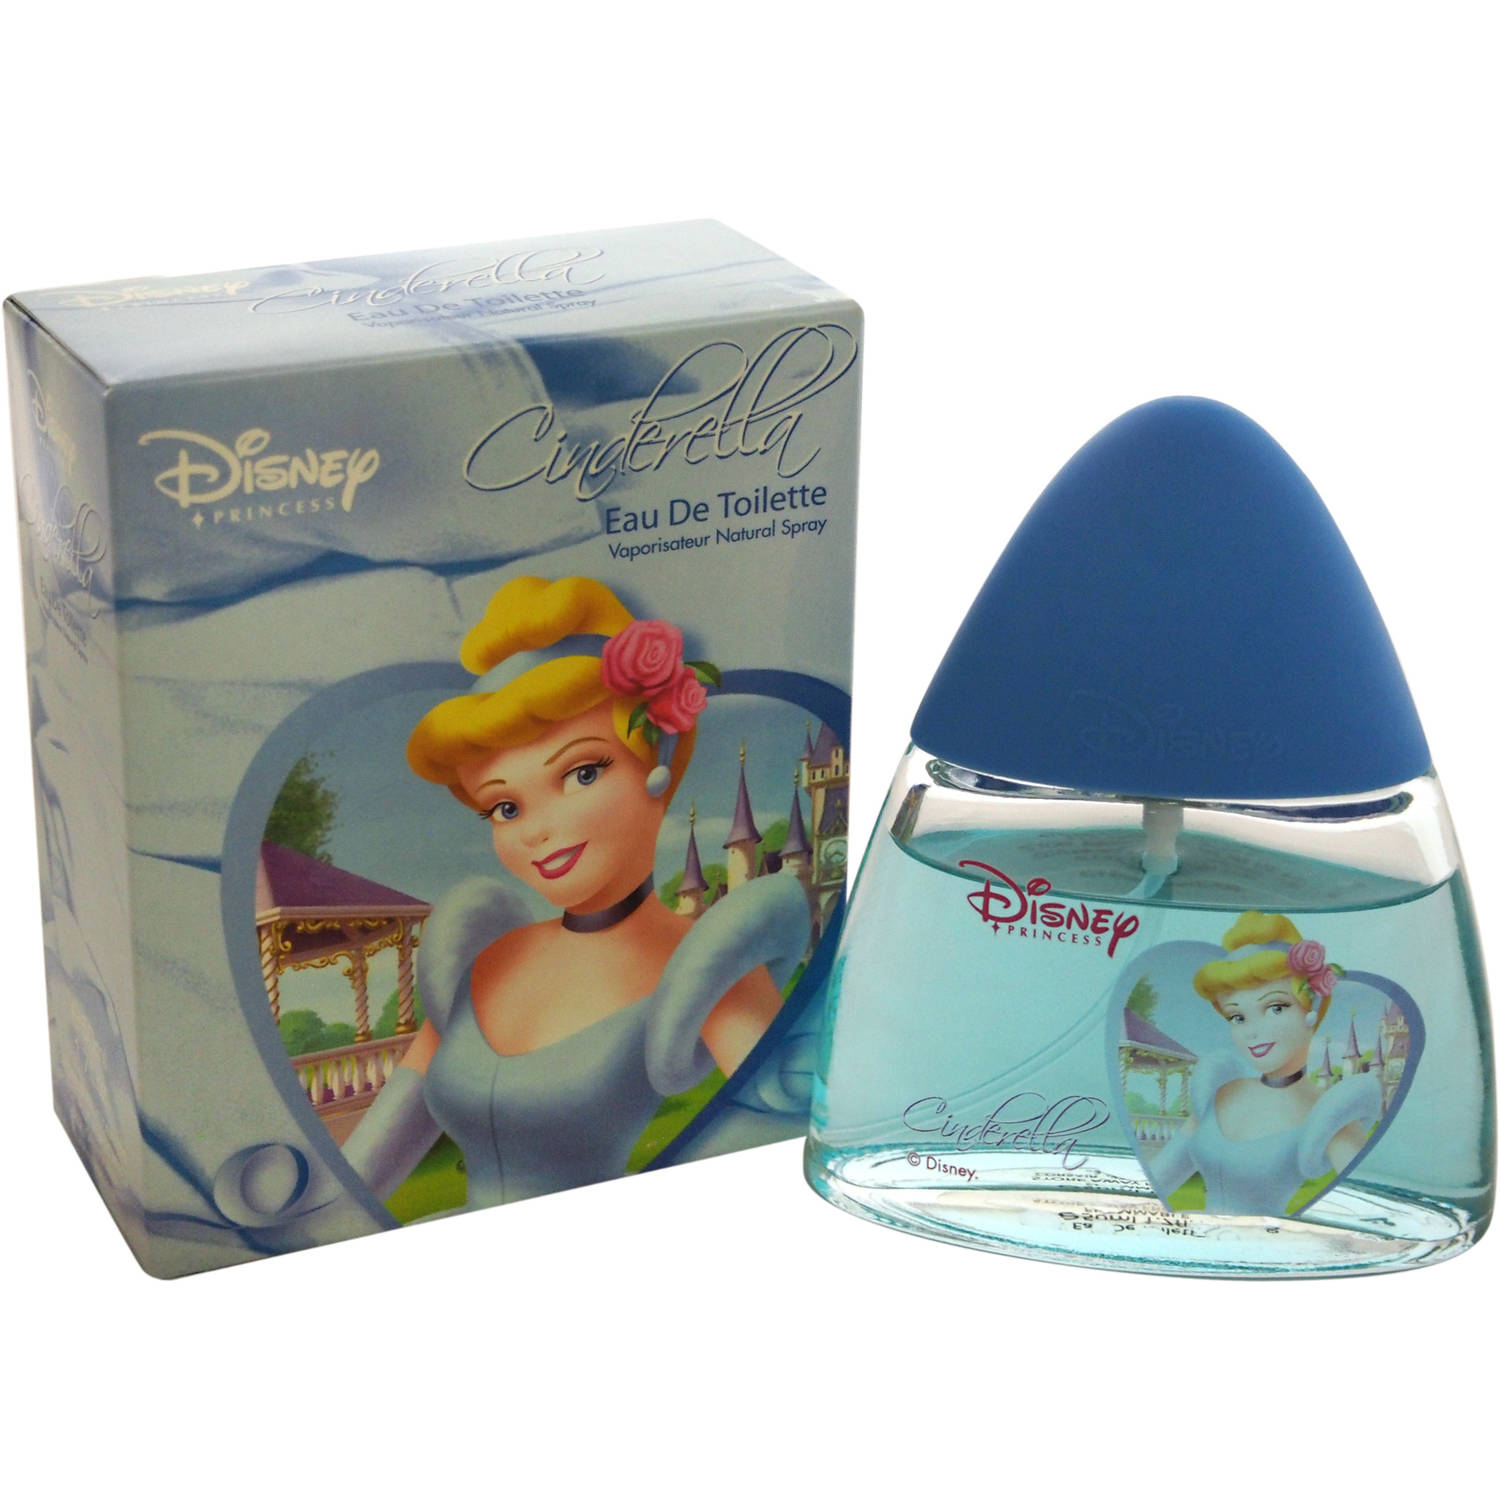 Cinderella by Disney for Kids Eau de Toilette Spray, 1.7 fl oz